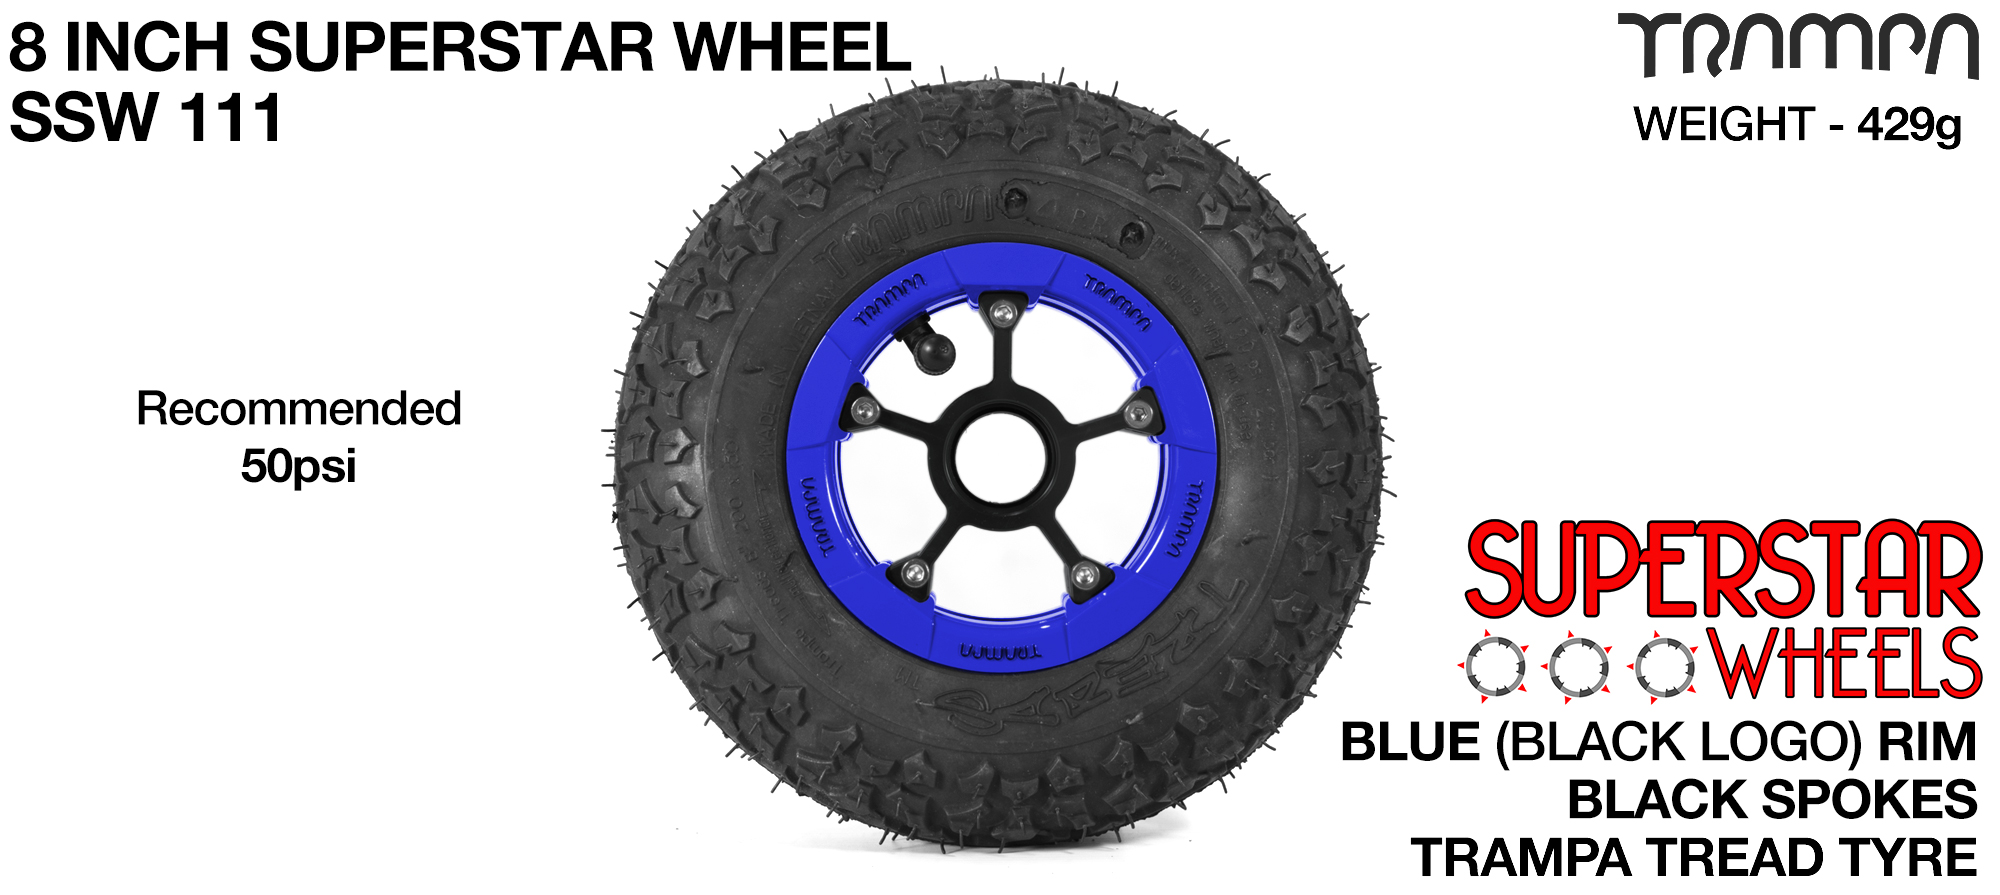 Superstar 8 inch wheels -  Blue & Black Logo Rim Black Anodised spokes & TRAMPA TREAD 8 inch Tyre